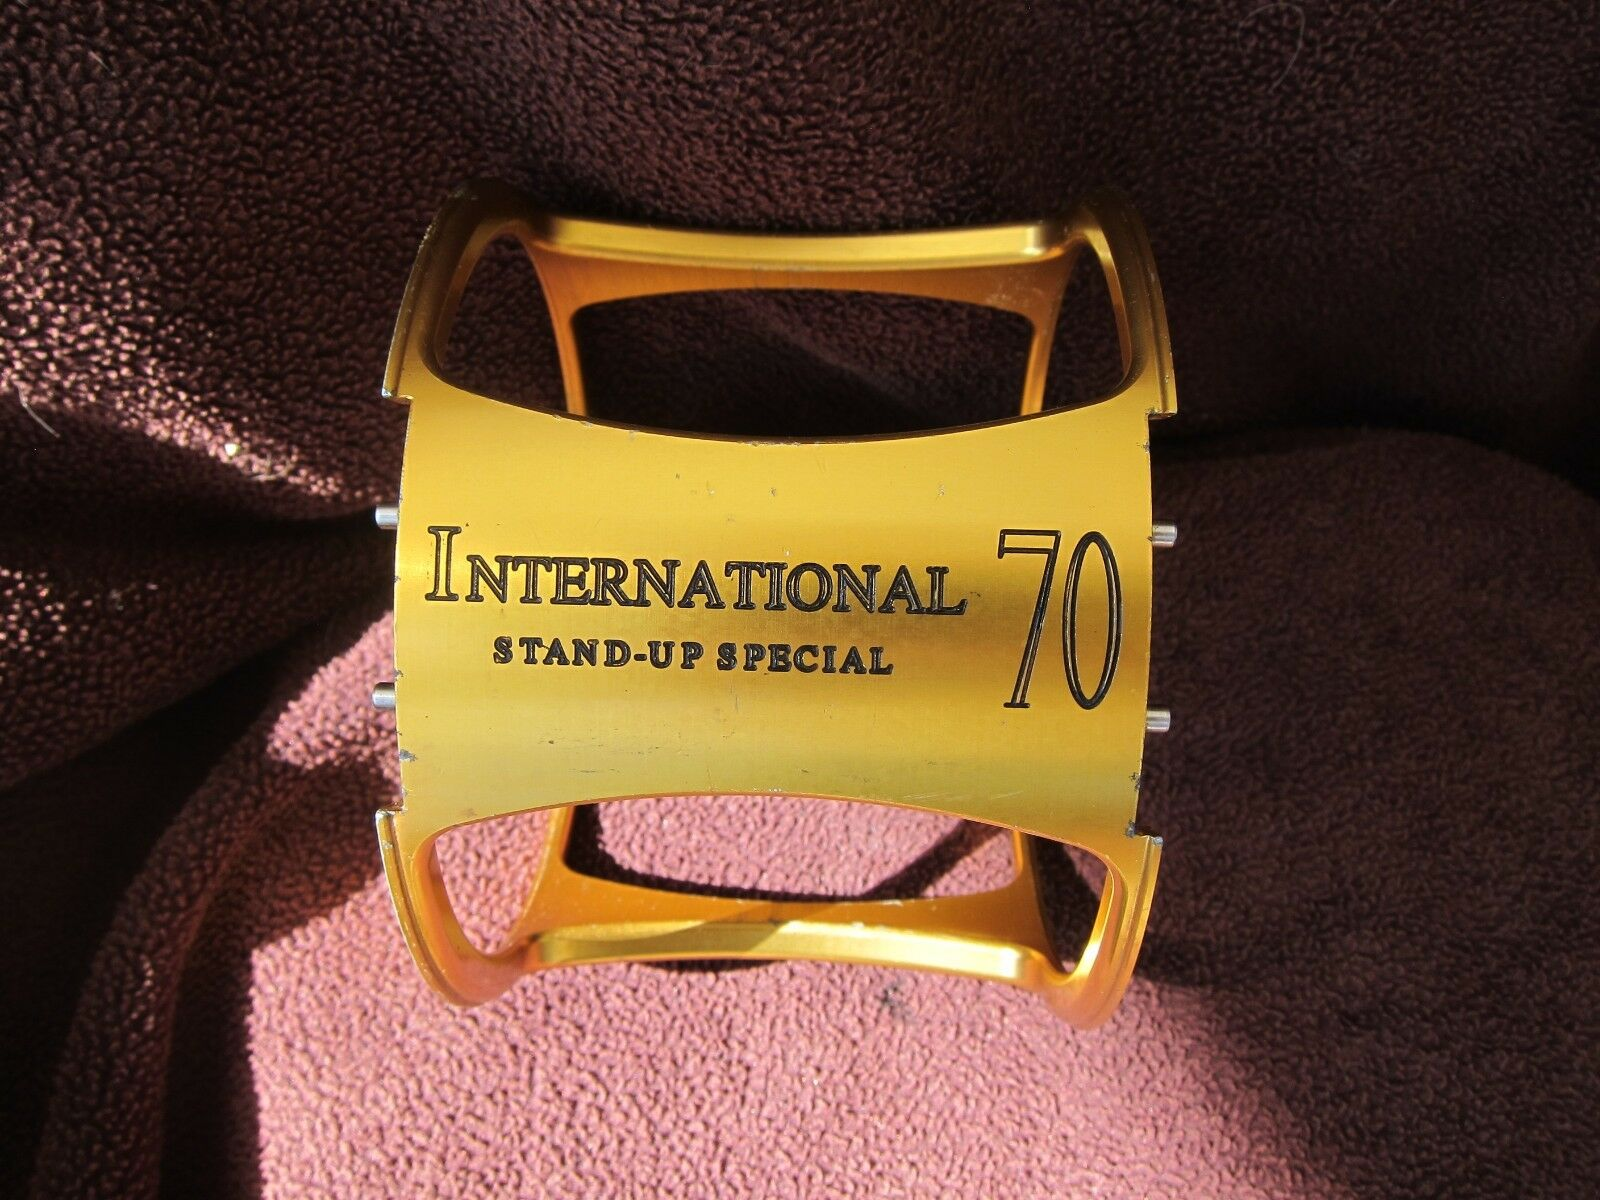 Penn International 70 STAND-UP SPECIAL Reel Frame  - GOOD WORKING CONDIII  after-sale protection